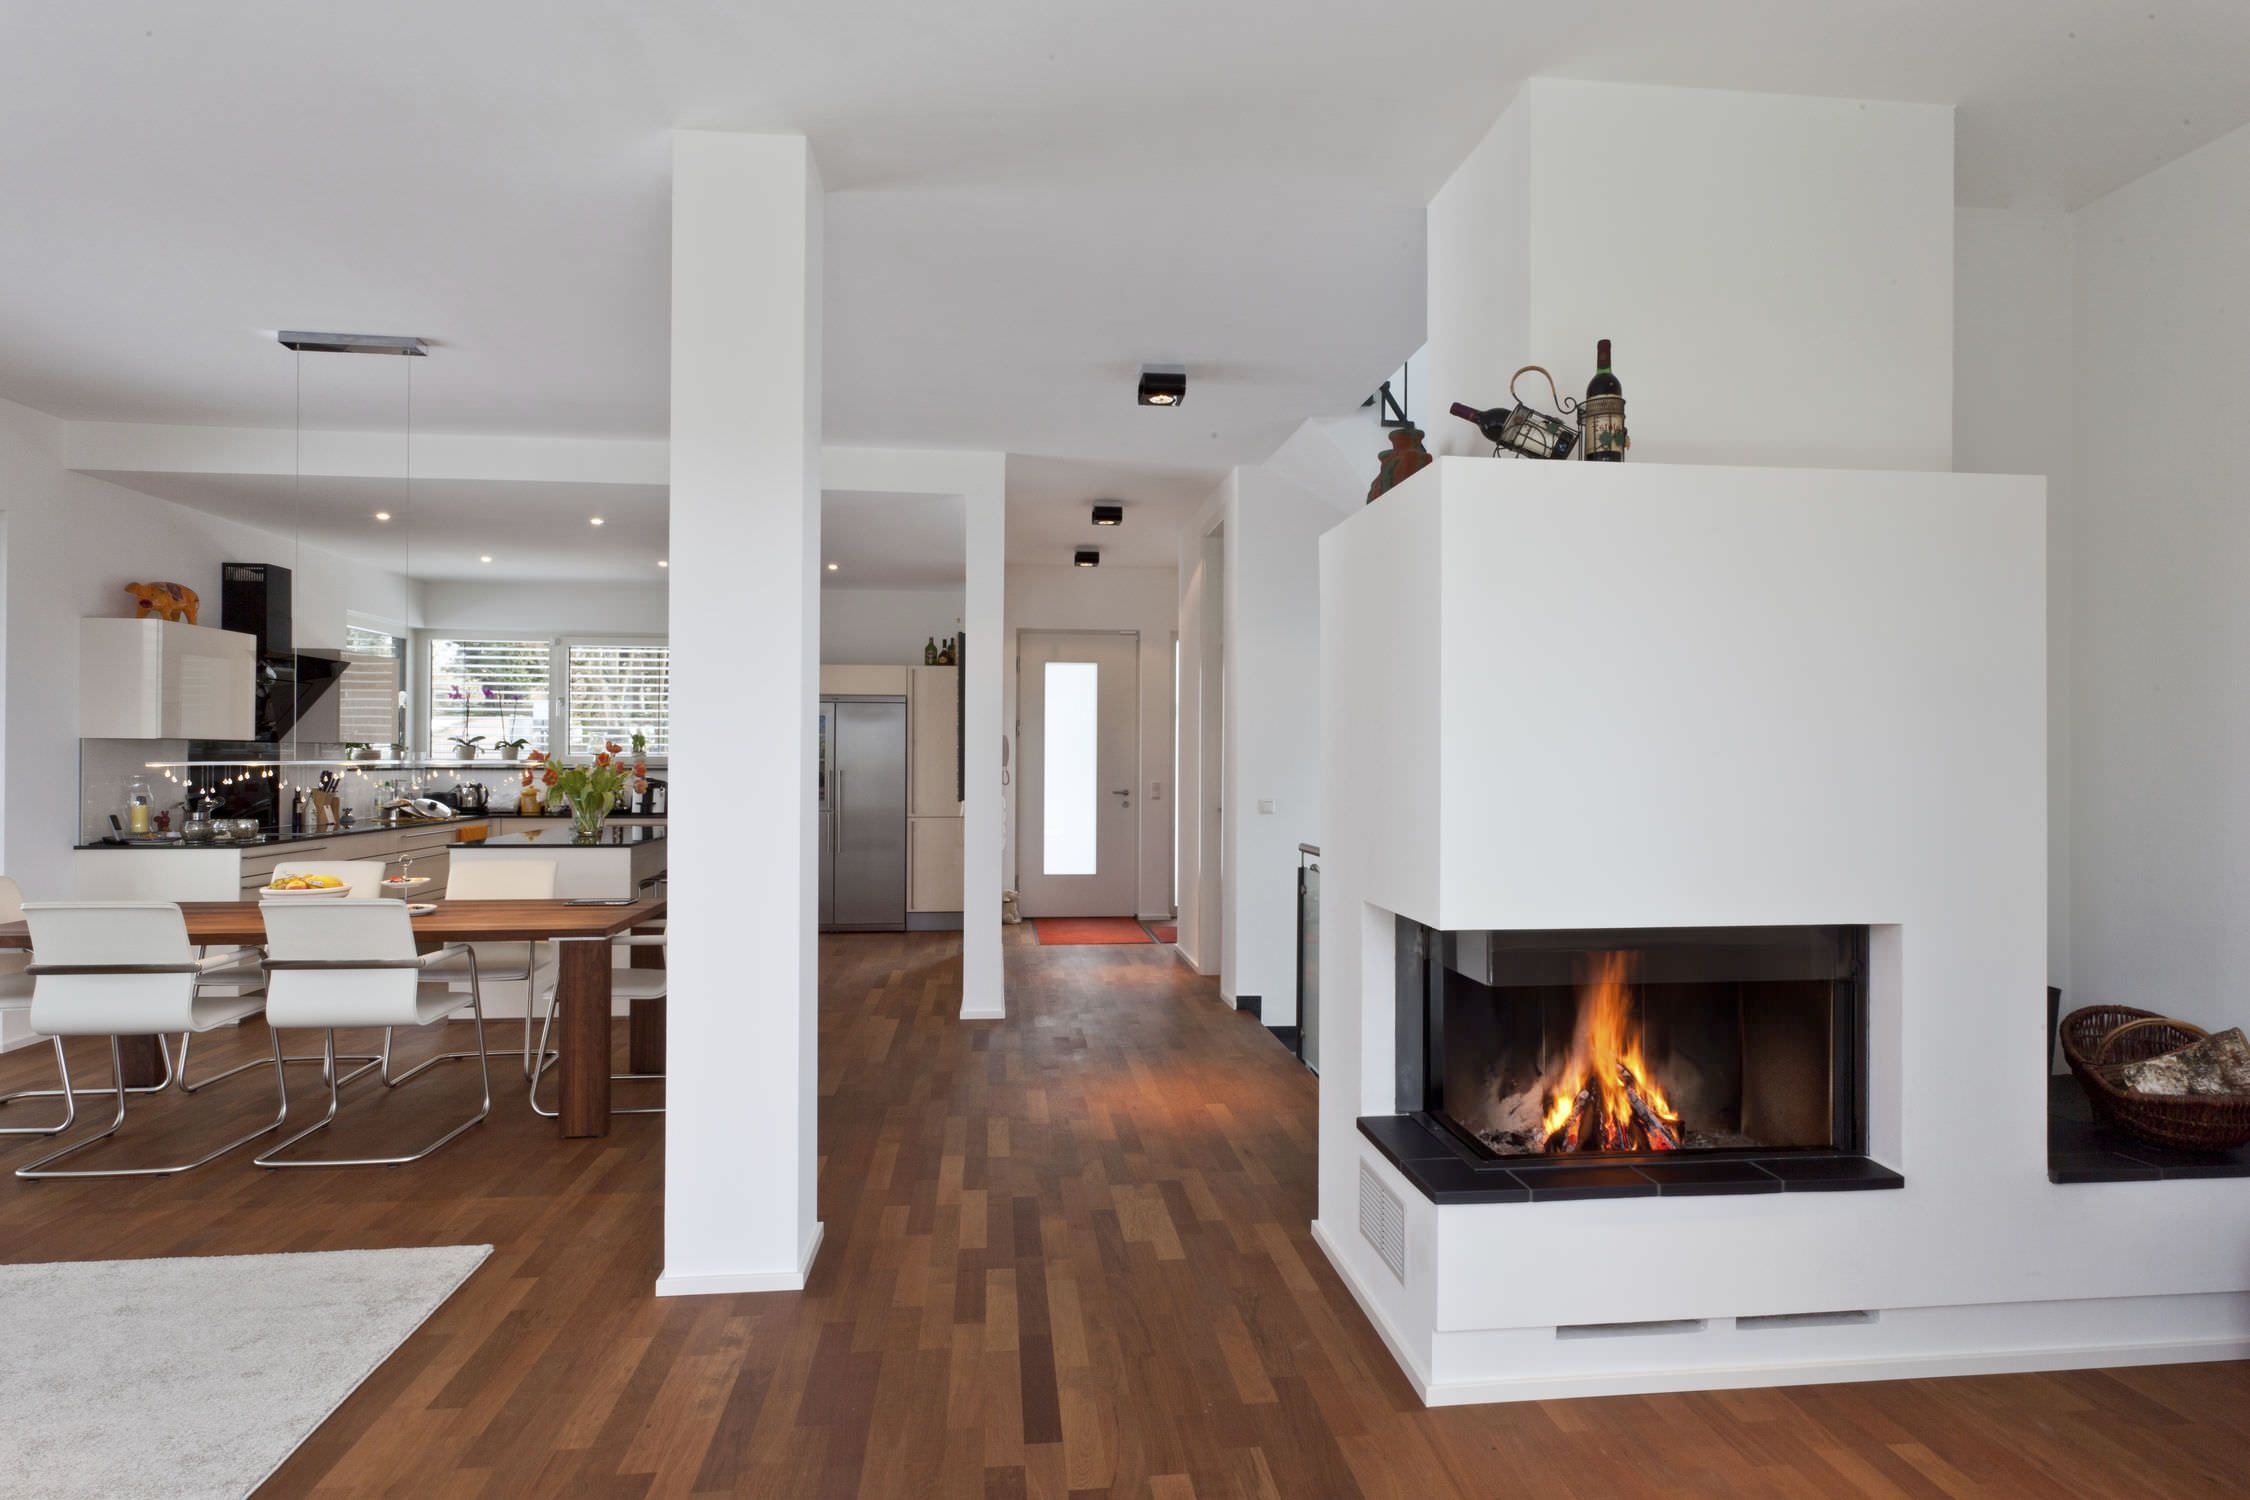 Modern Fireplace Designs | Interior Design | Pinterest | Fireplace ...